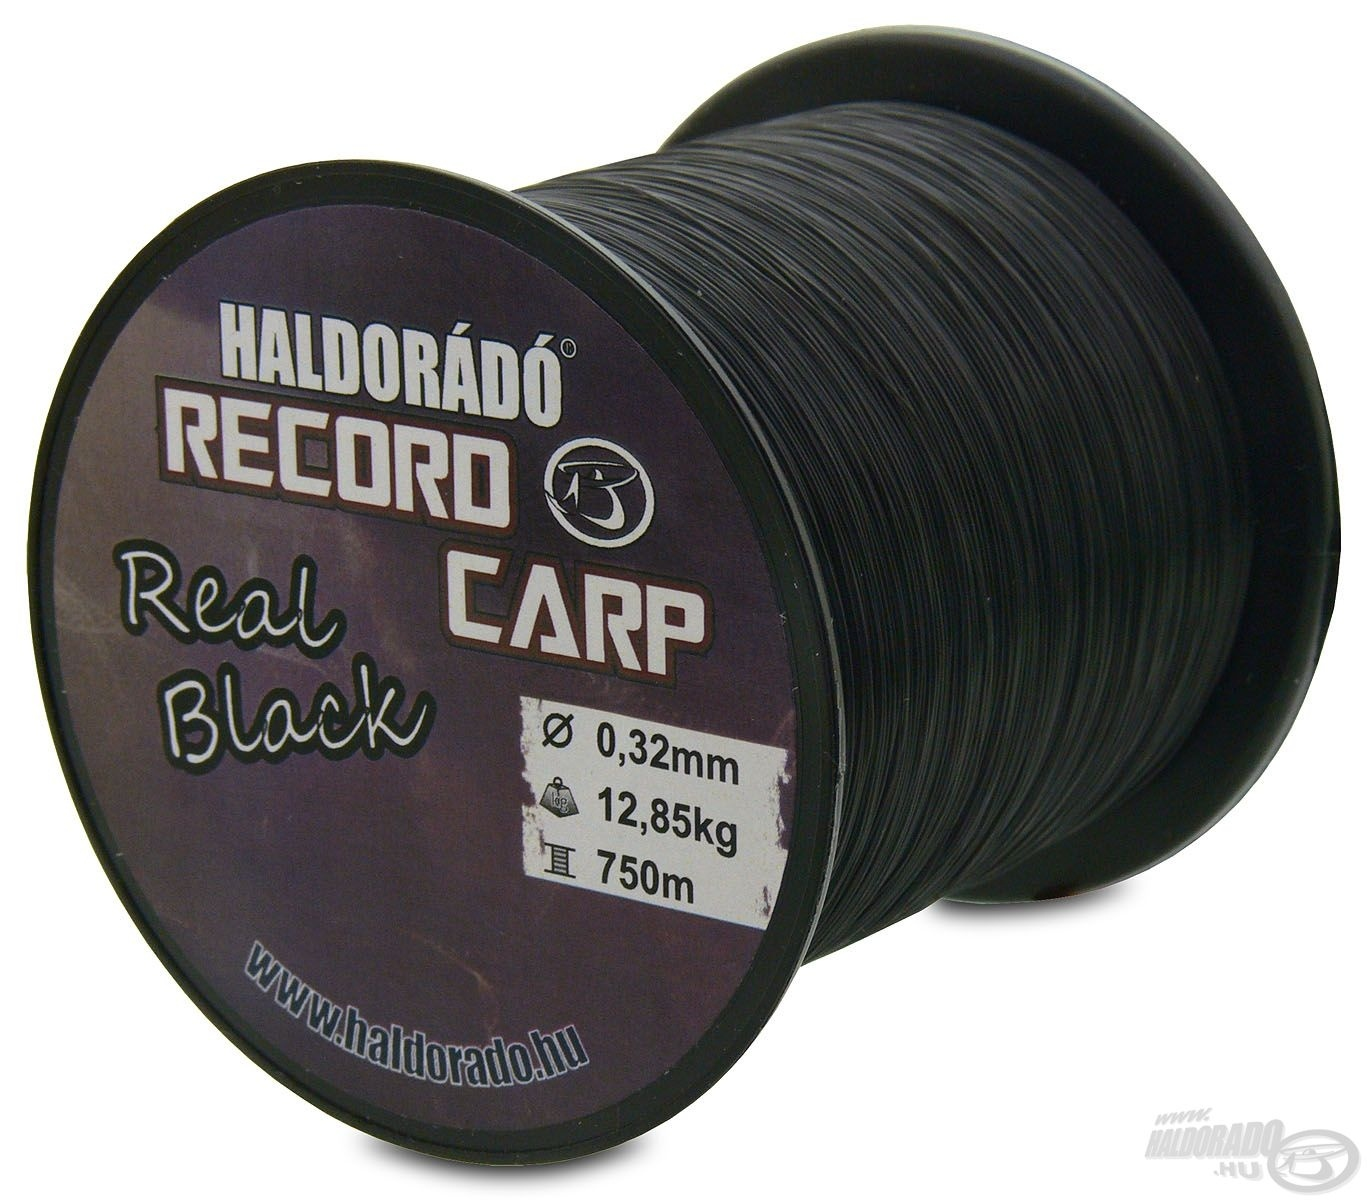 HALDOR�D�, Record, Carp, Real, Black, 1990Ft